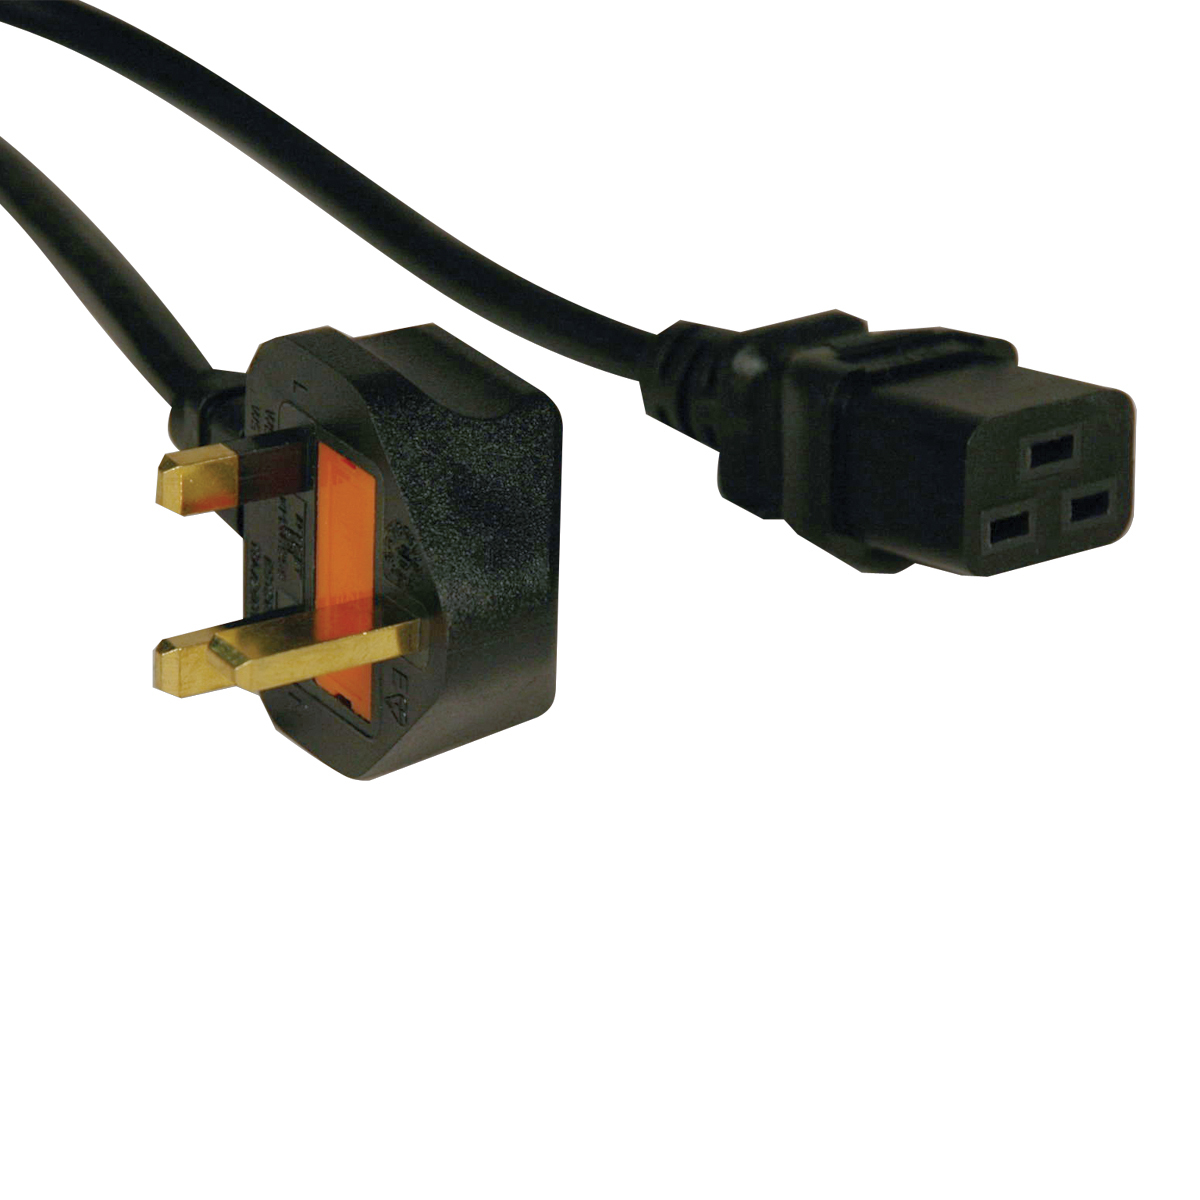 Tripp Lite Standard Uk Power Cord Lead Cable 13a Iec 320 C19 To Bs Plug Wiring 1363